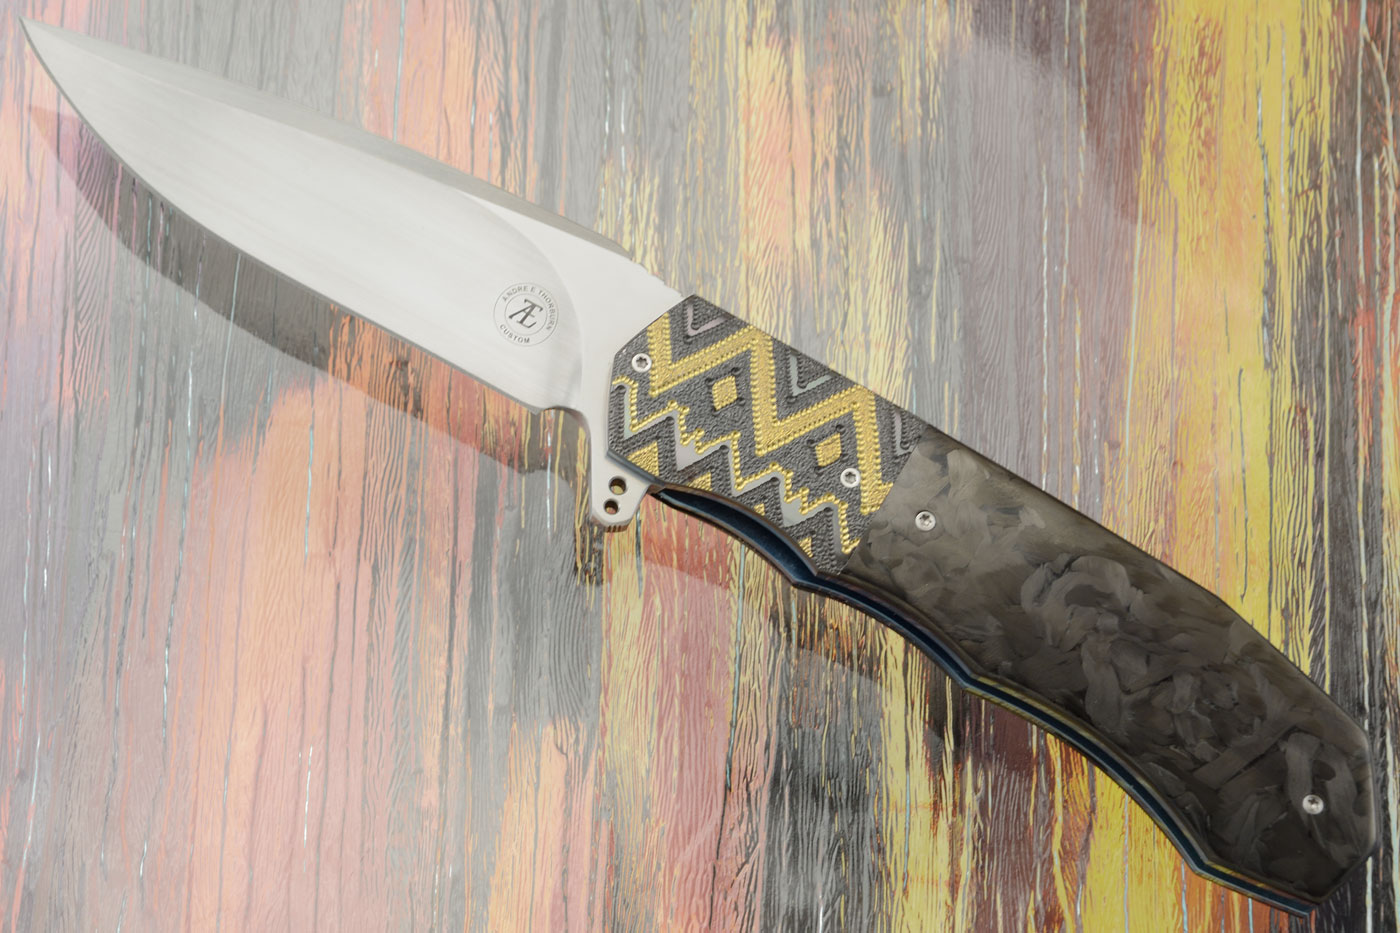 L44 Compact with Marble Carbon Fiber and Zirconium (Ceramic IKBS)